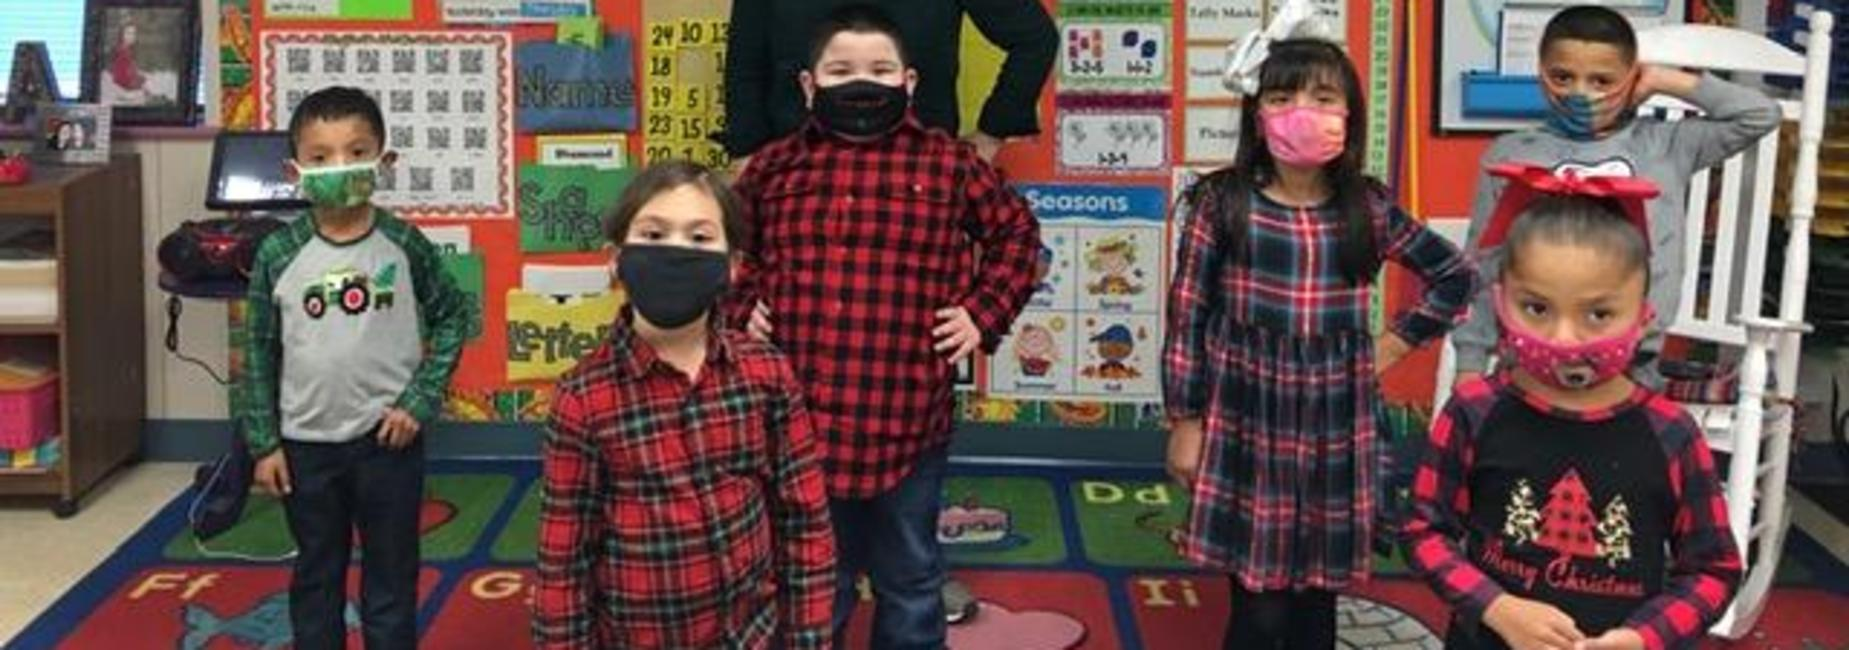 plaid students